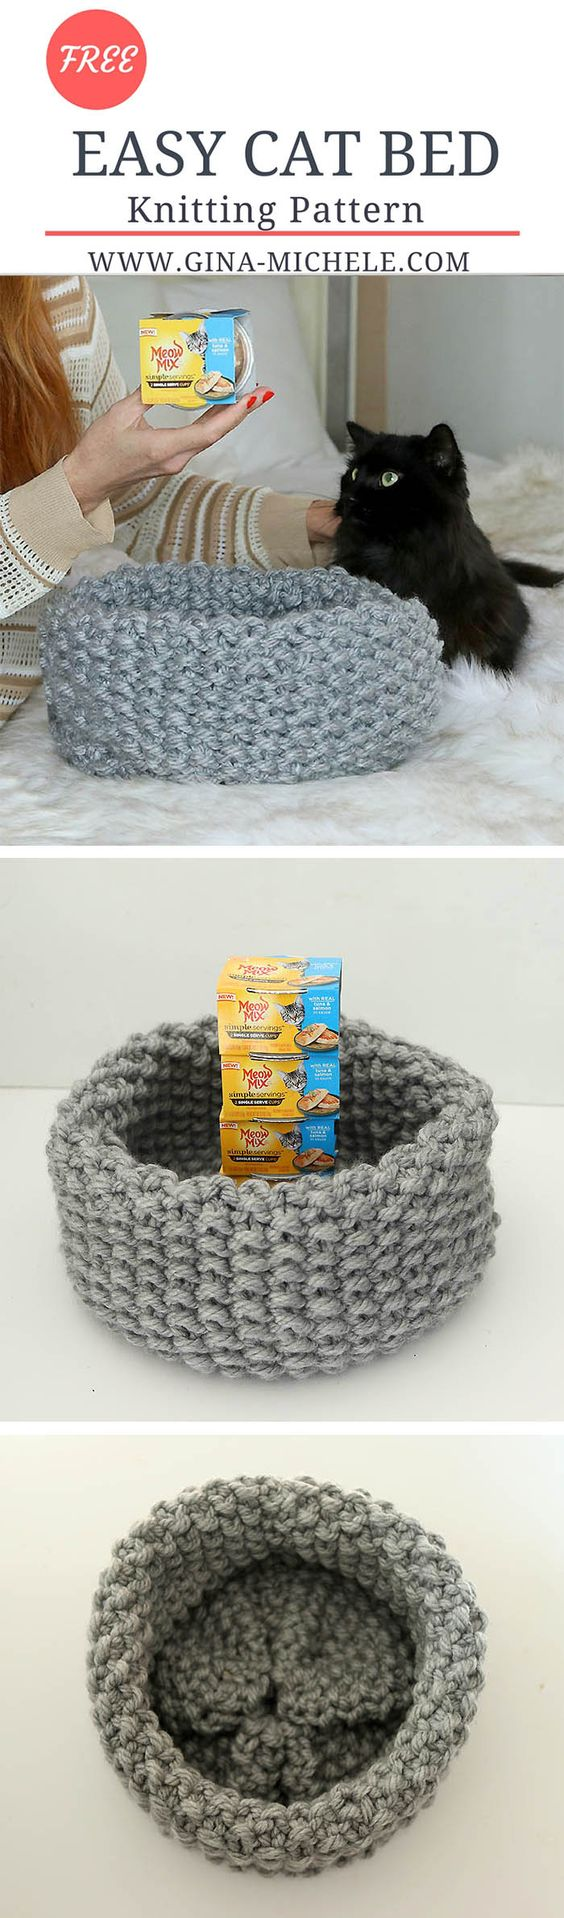 15+ Crochet Pet Bed Ideas